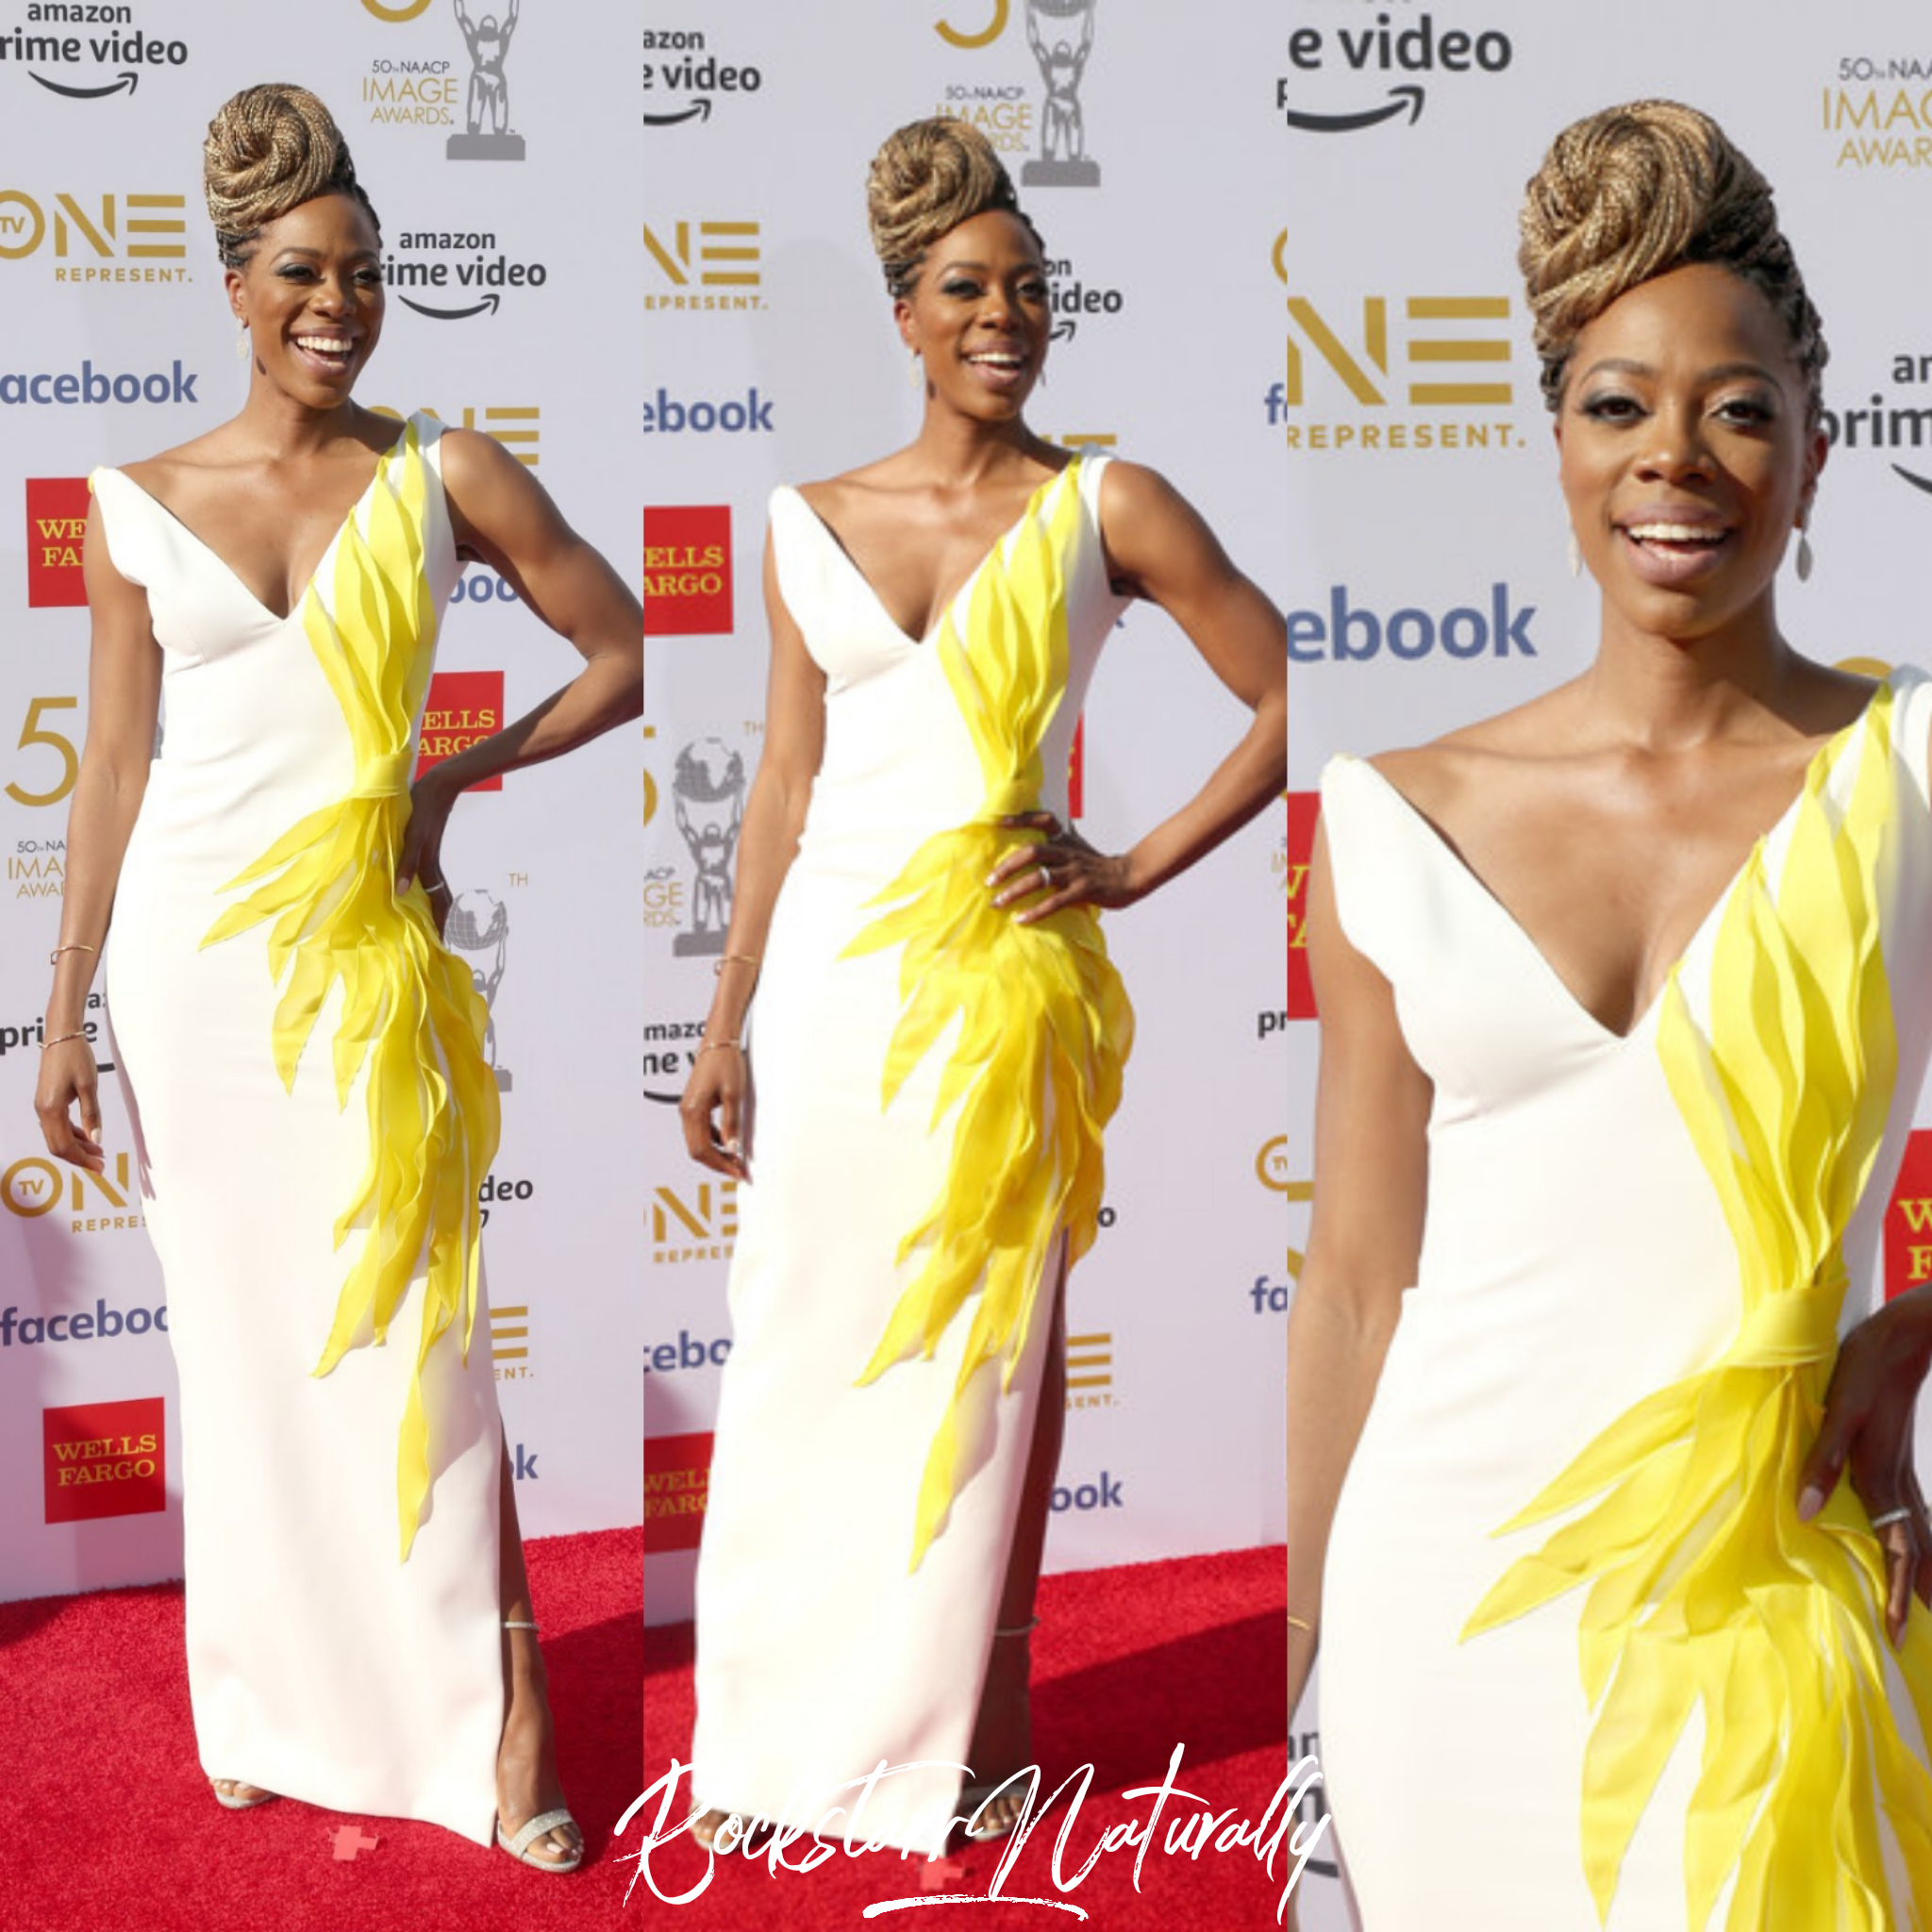 50TH NAACP IMAGE AWARDS RED CARPET 2019 YVONNE ORJI COLLAGE.png